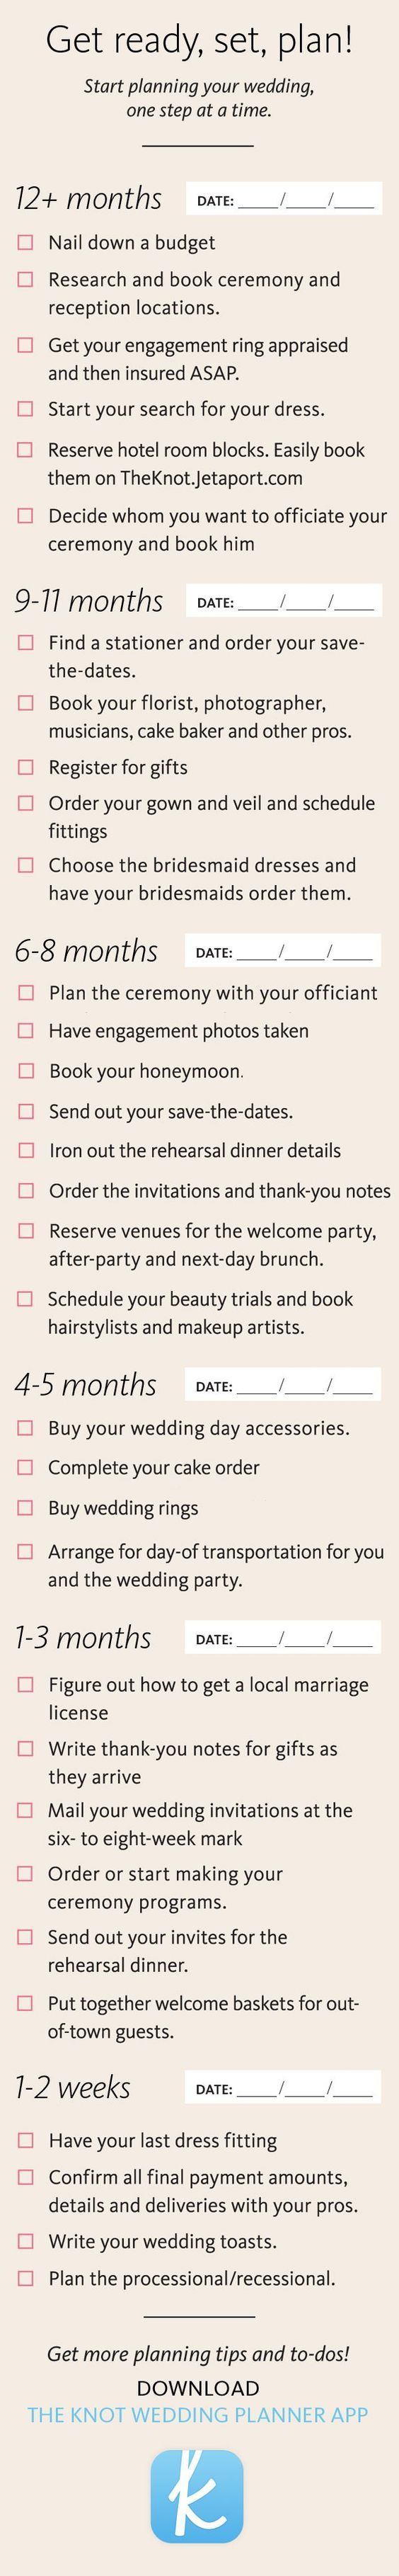 Take a look at the best wedding planning apps in the photos below and get ideas for your wedding!!! This will make life easier! Image source Wedding planning can be a headache, but staying organized is key! Let us… Continue Reading ? * Want additional info? Click on the image. #WeddingAdviceIdeasTips